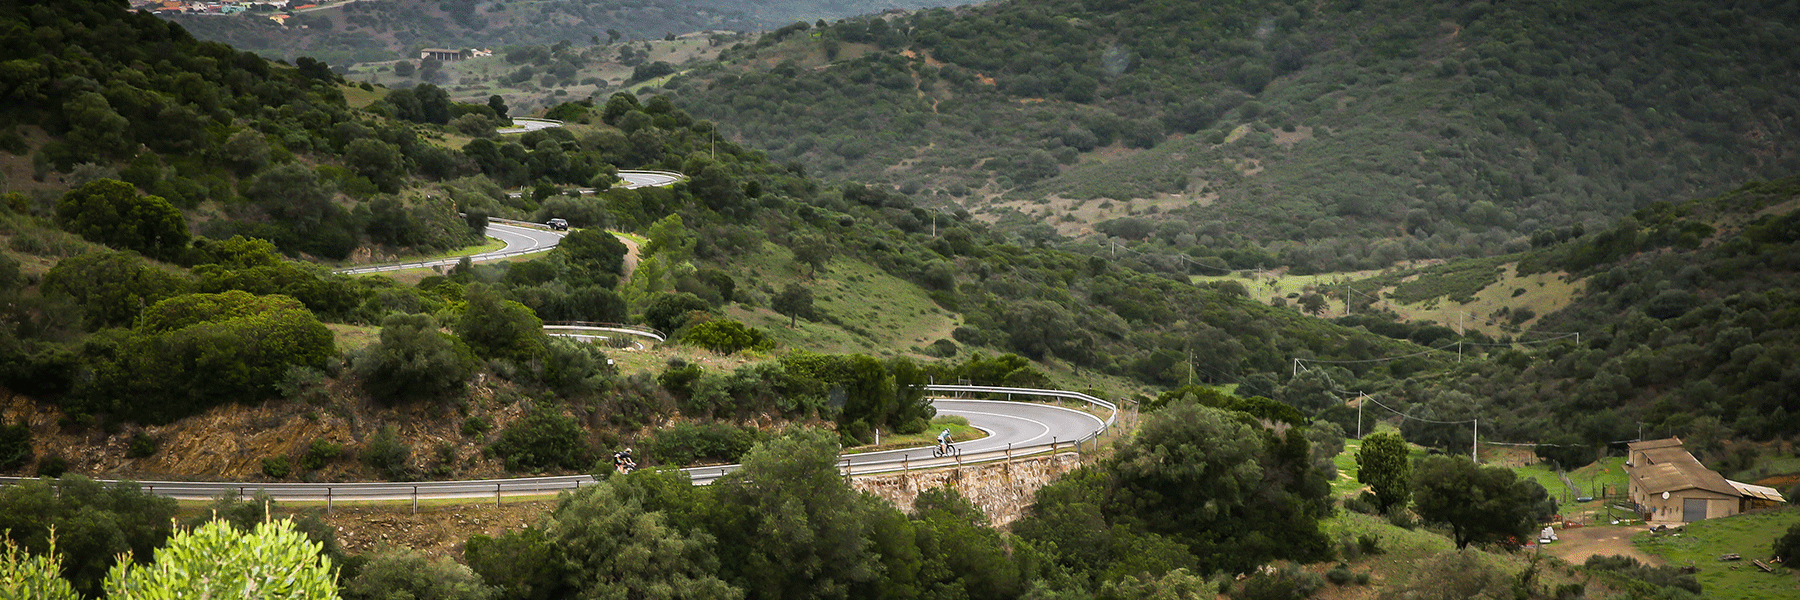 IRONMAN 70.3 Sardegna athletes one their bike on winding streets surrounded by smalls hills and forests